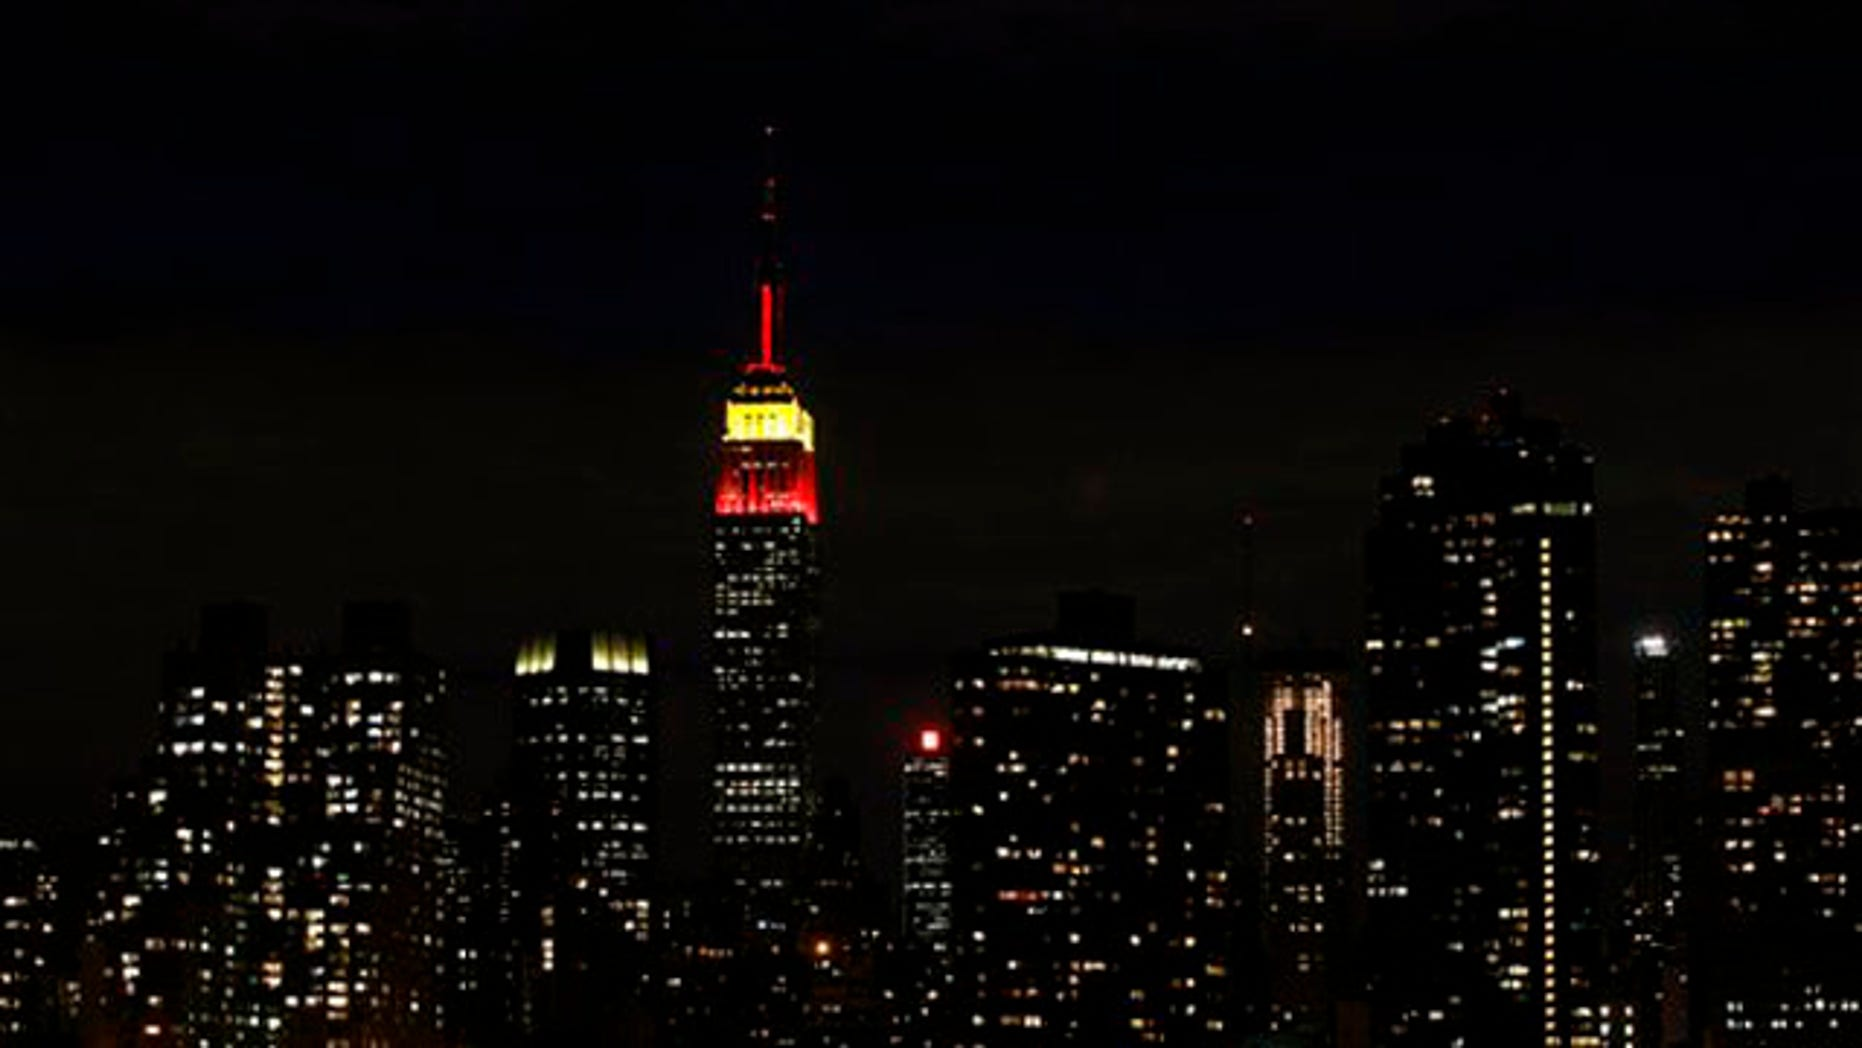 Sept. 30, 2009: The Empire State Building in New York is lit in red and yellow to honor the 60th anniversary of the communist revolution in China. Catholics are criticizing the owners of the landmark skyscraper for declining to illuminate it in honor of the late Mother Teresa, who would have turned 100 on Aug. 26, 2010.